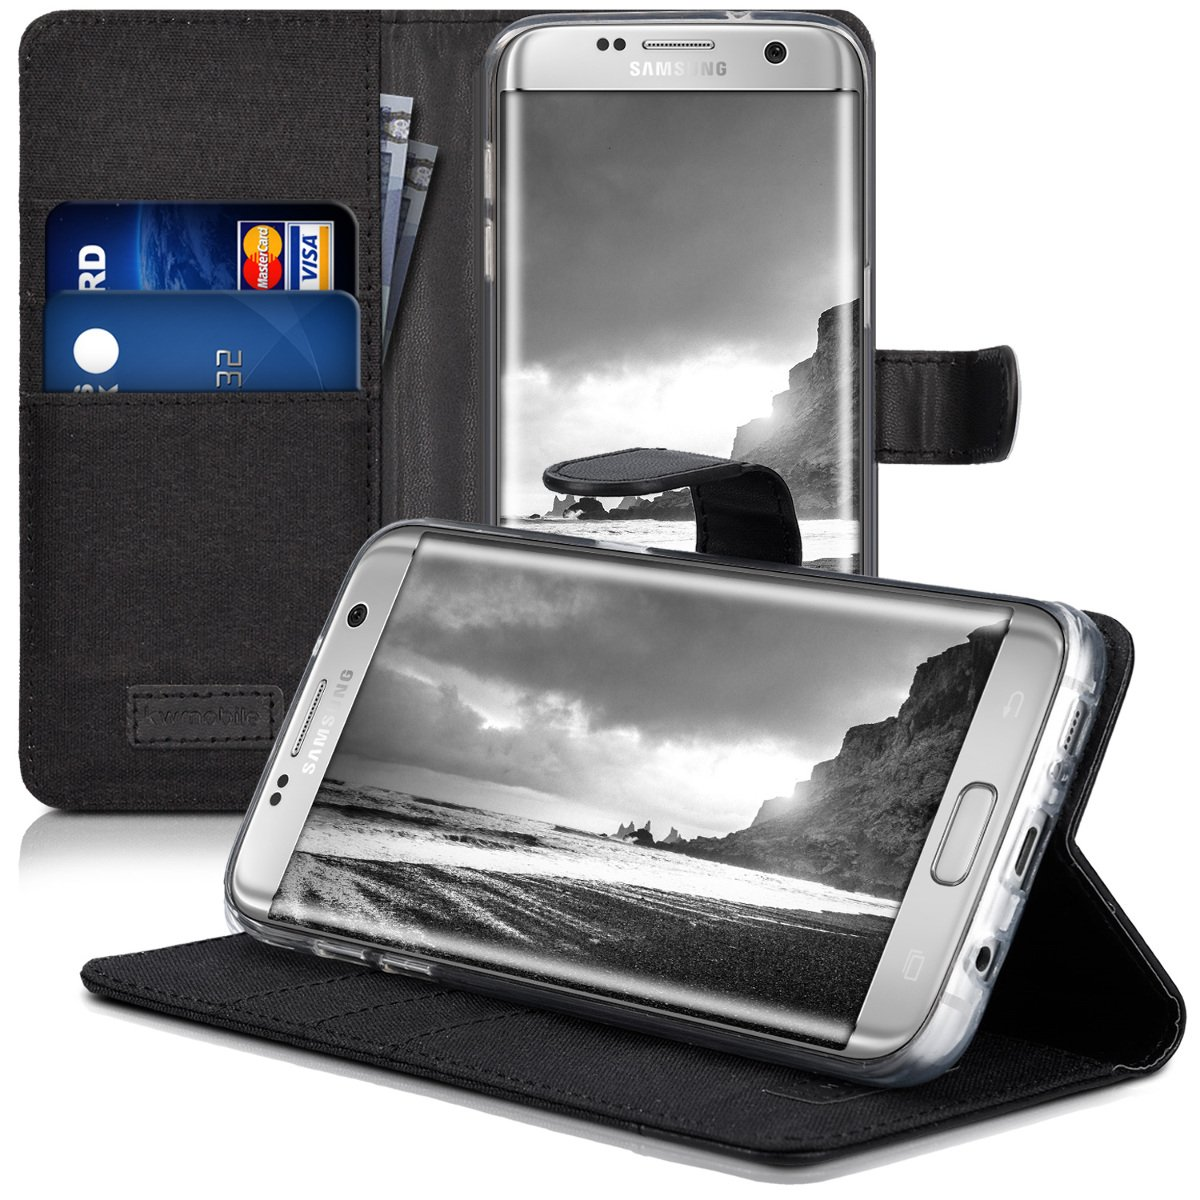 Grey//Black Fabric and PU Leather Flip Cover with Card Slots and Stand kwmobile Wallet Case for Samsung Galaxy S7 Edge